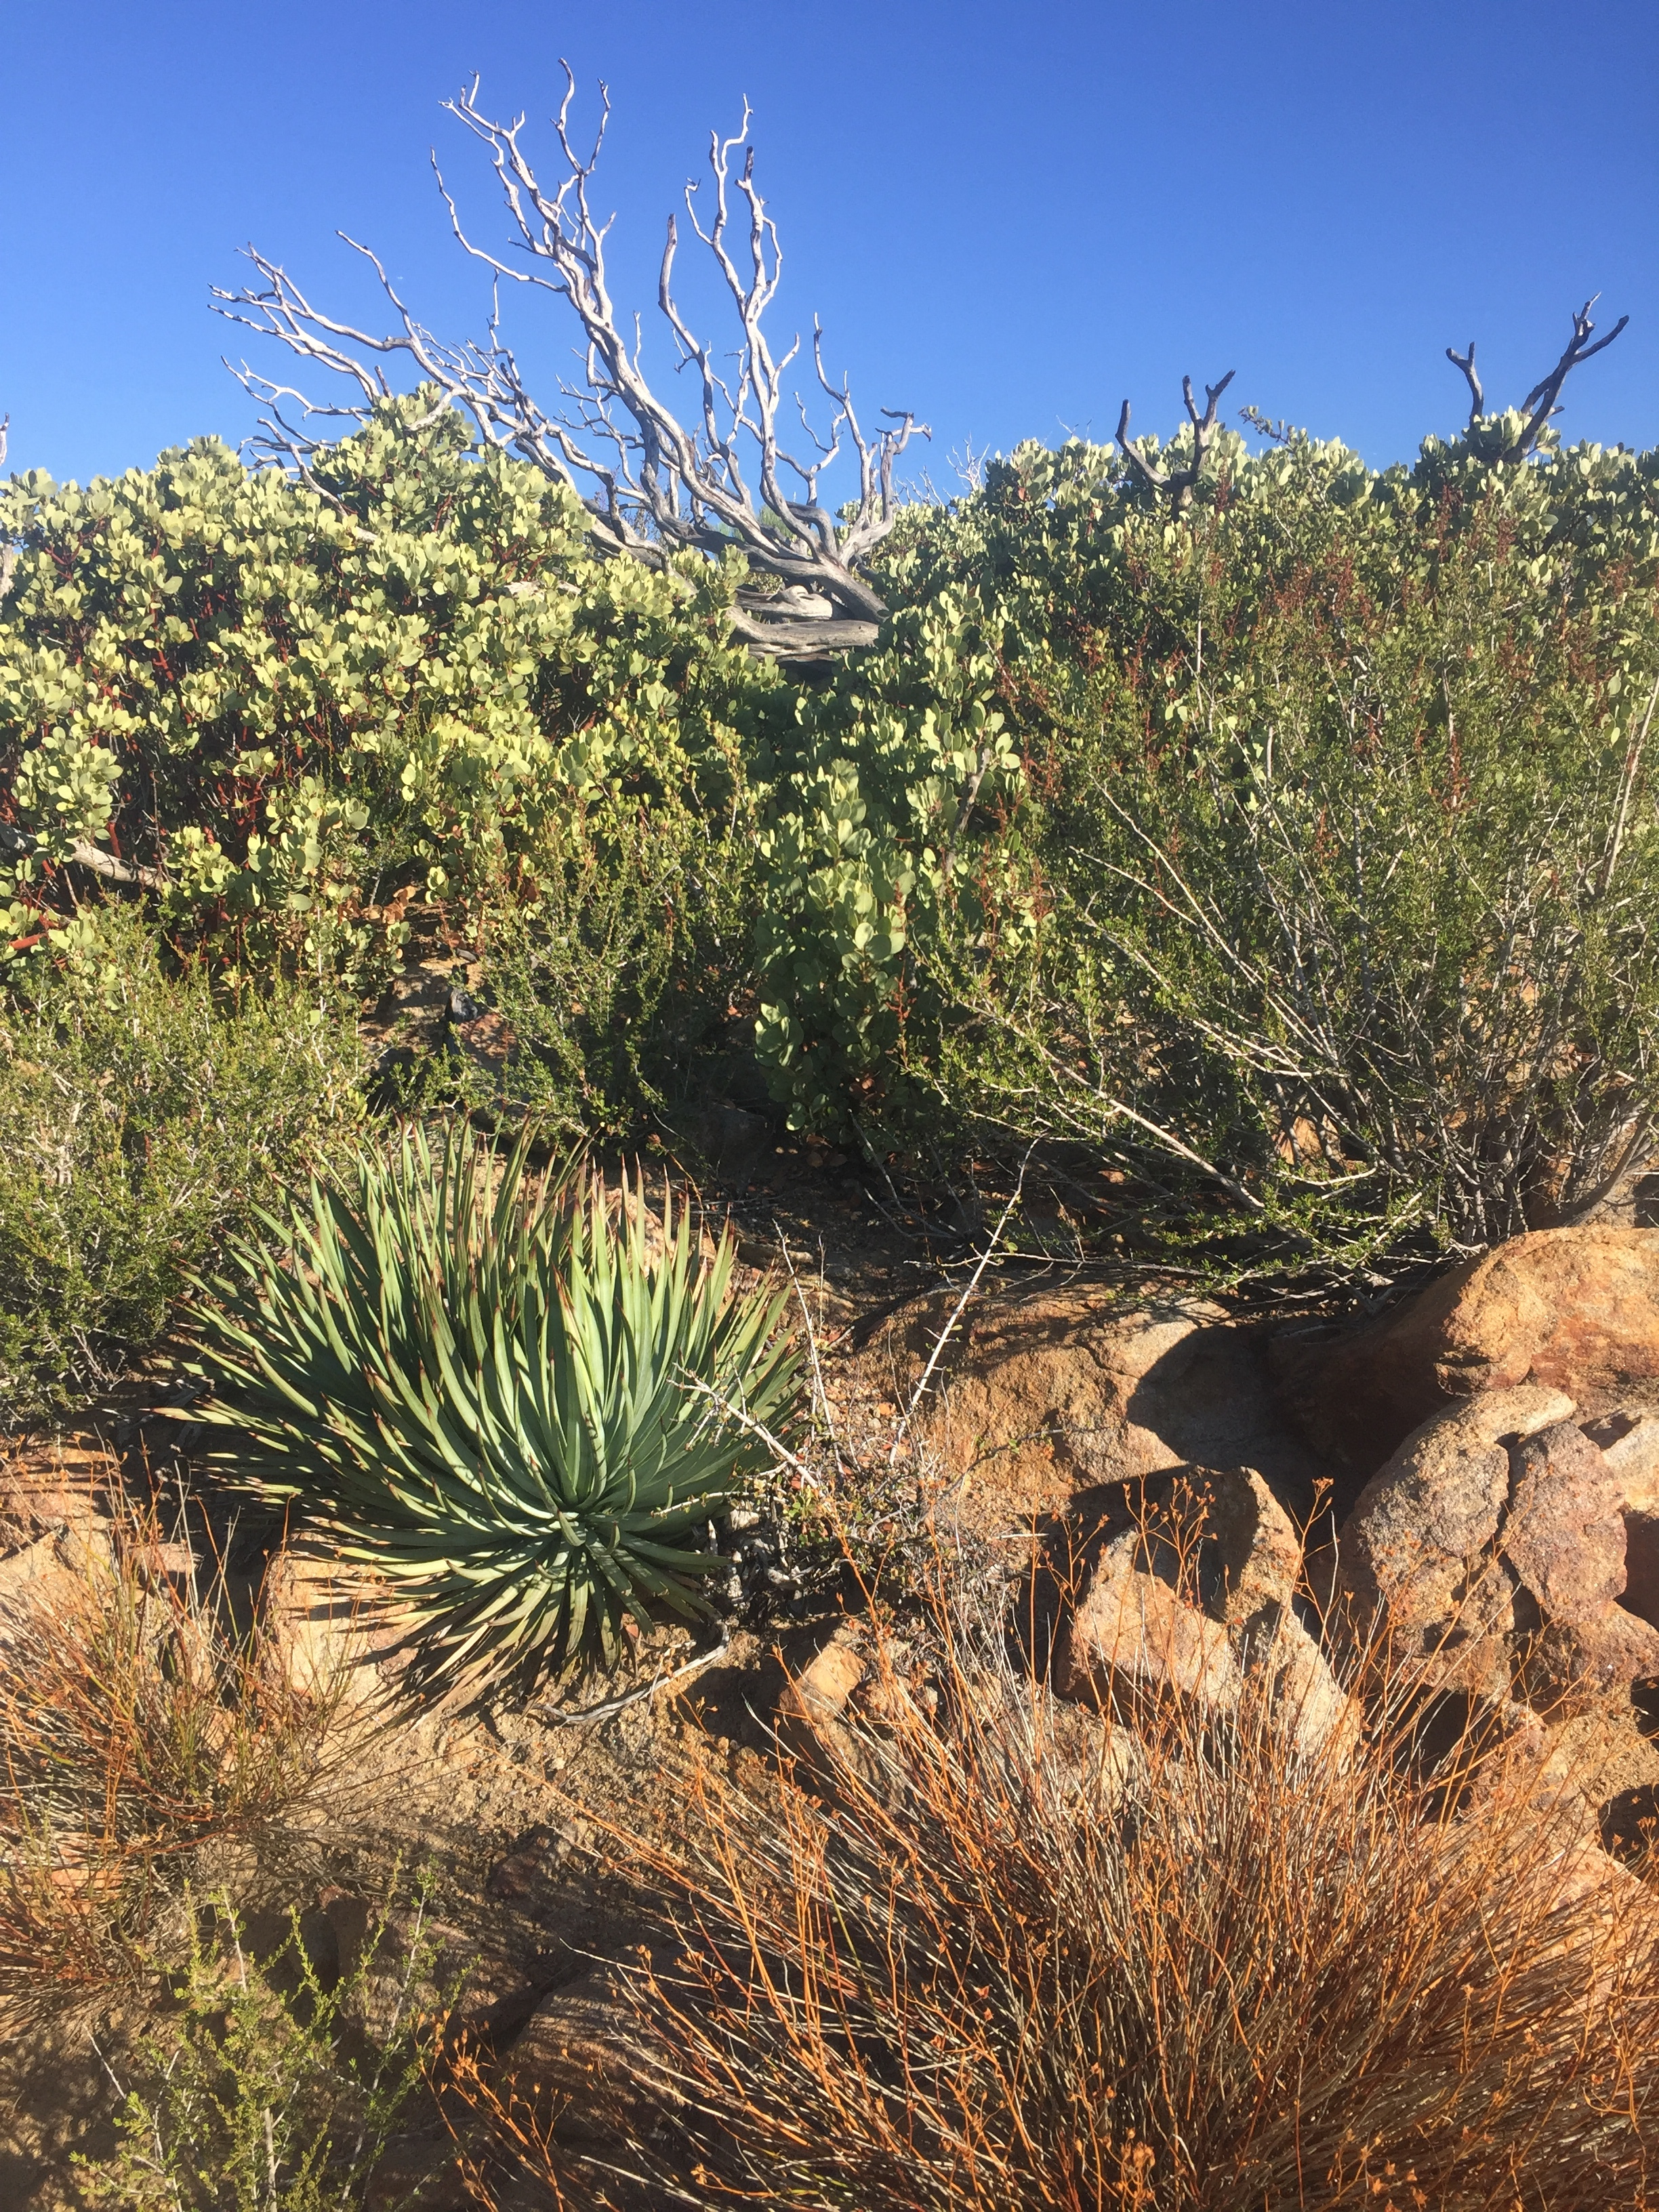 Transition from chaparral to desert